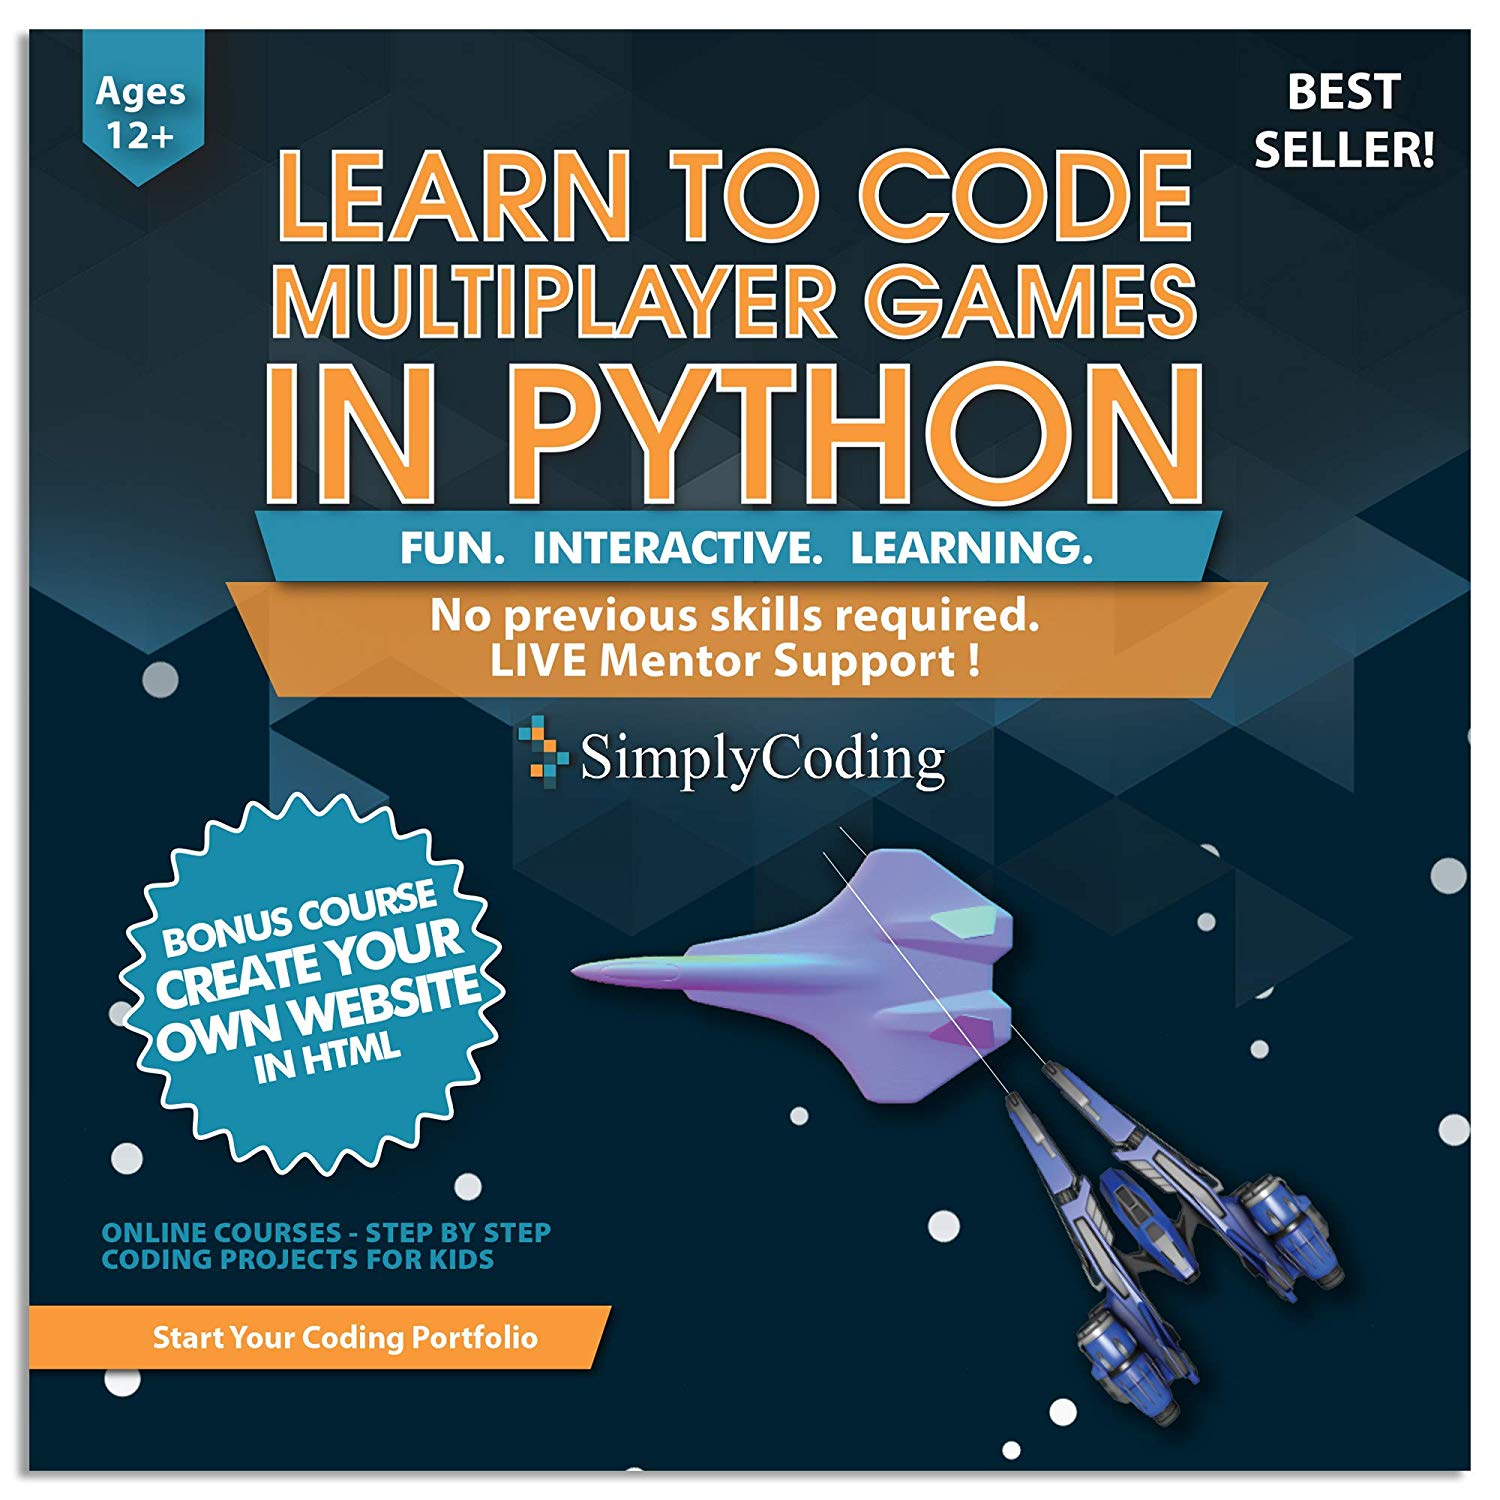 Simply Coding Python-Multiplayer Program Simplifies Python and Code creation for Kids